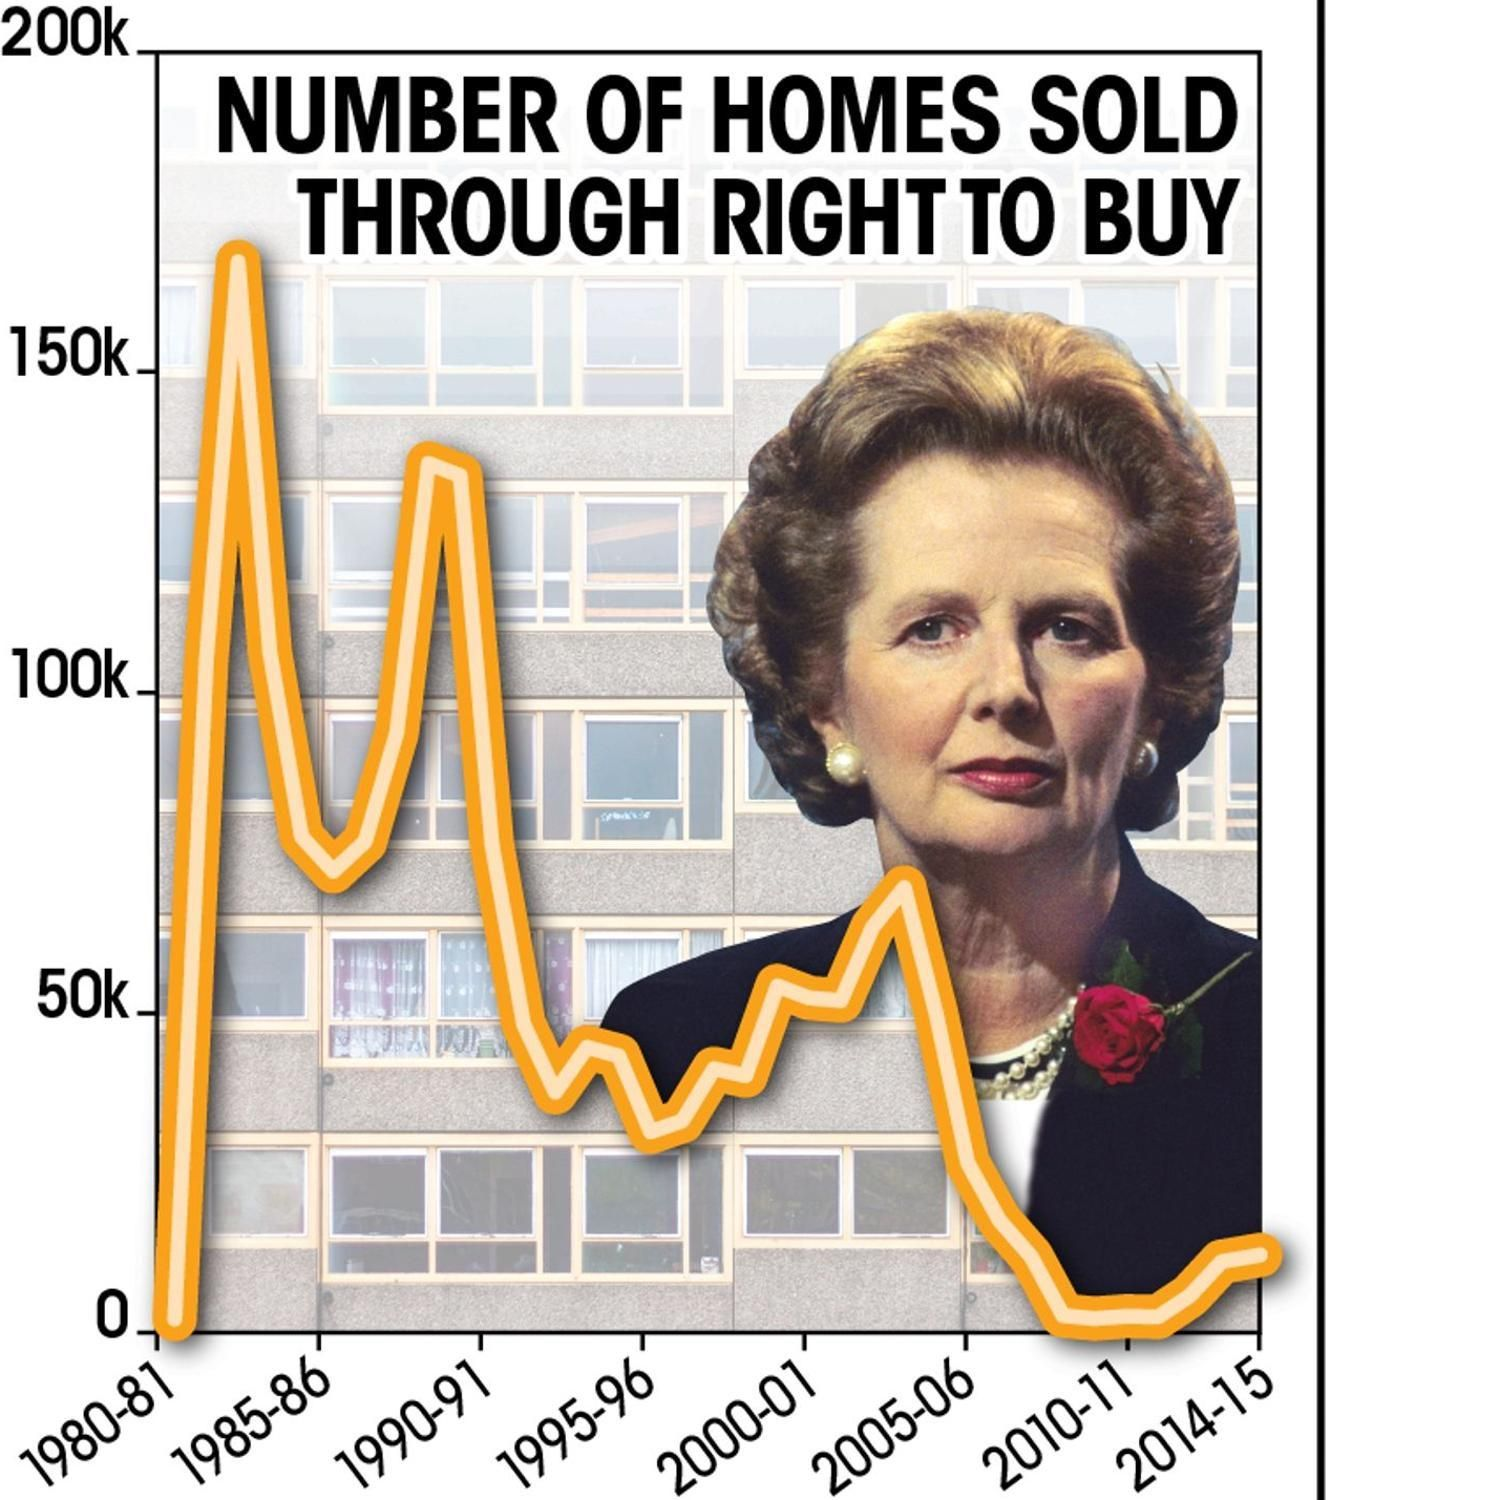 right to buy thatcher